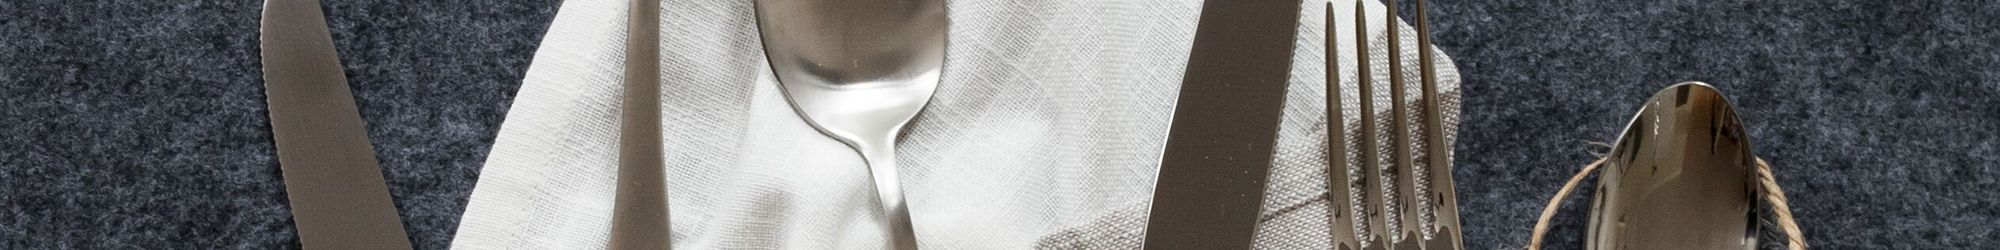 Vietri Aladdin Brilliant Clear Flatware